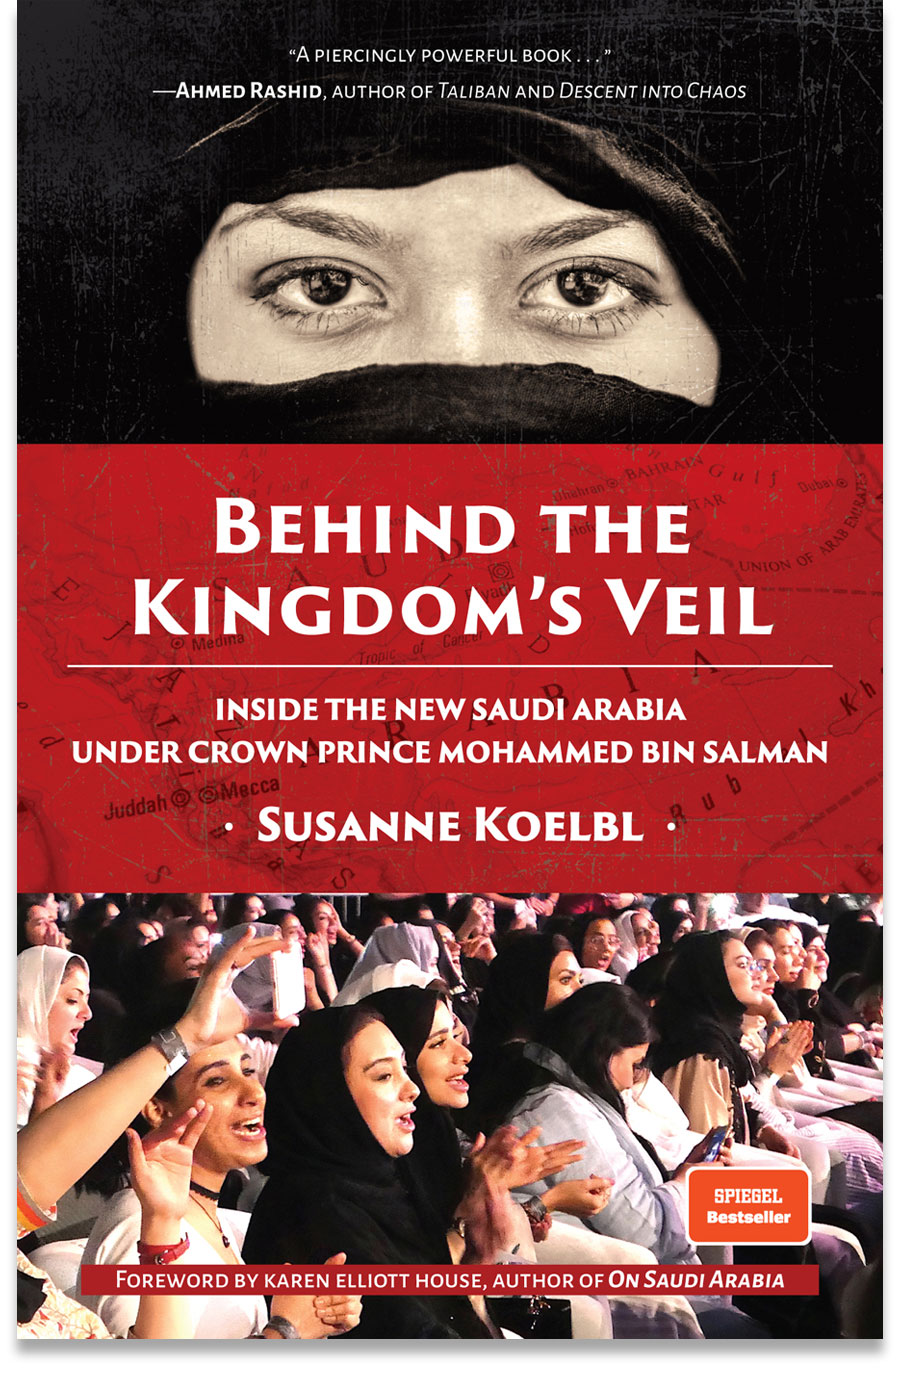 Behind The Kingdoms VeilS by Susanne Koelbl